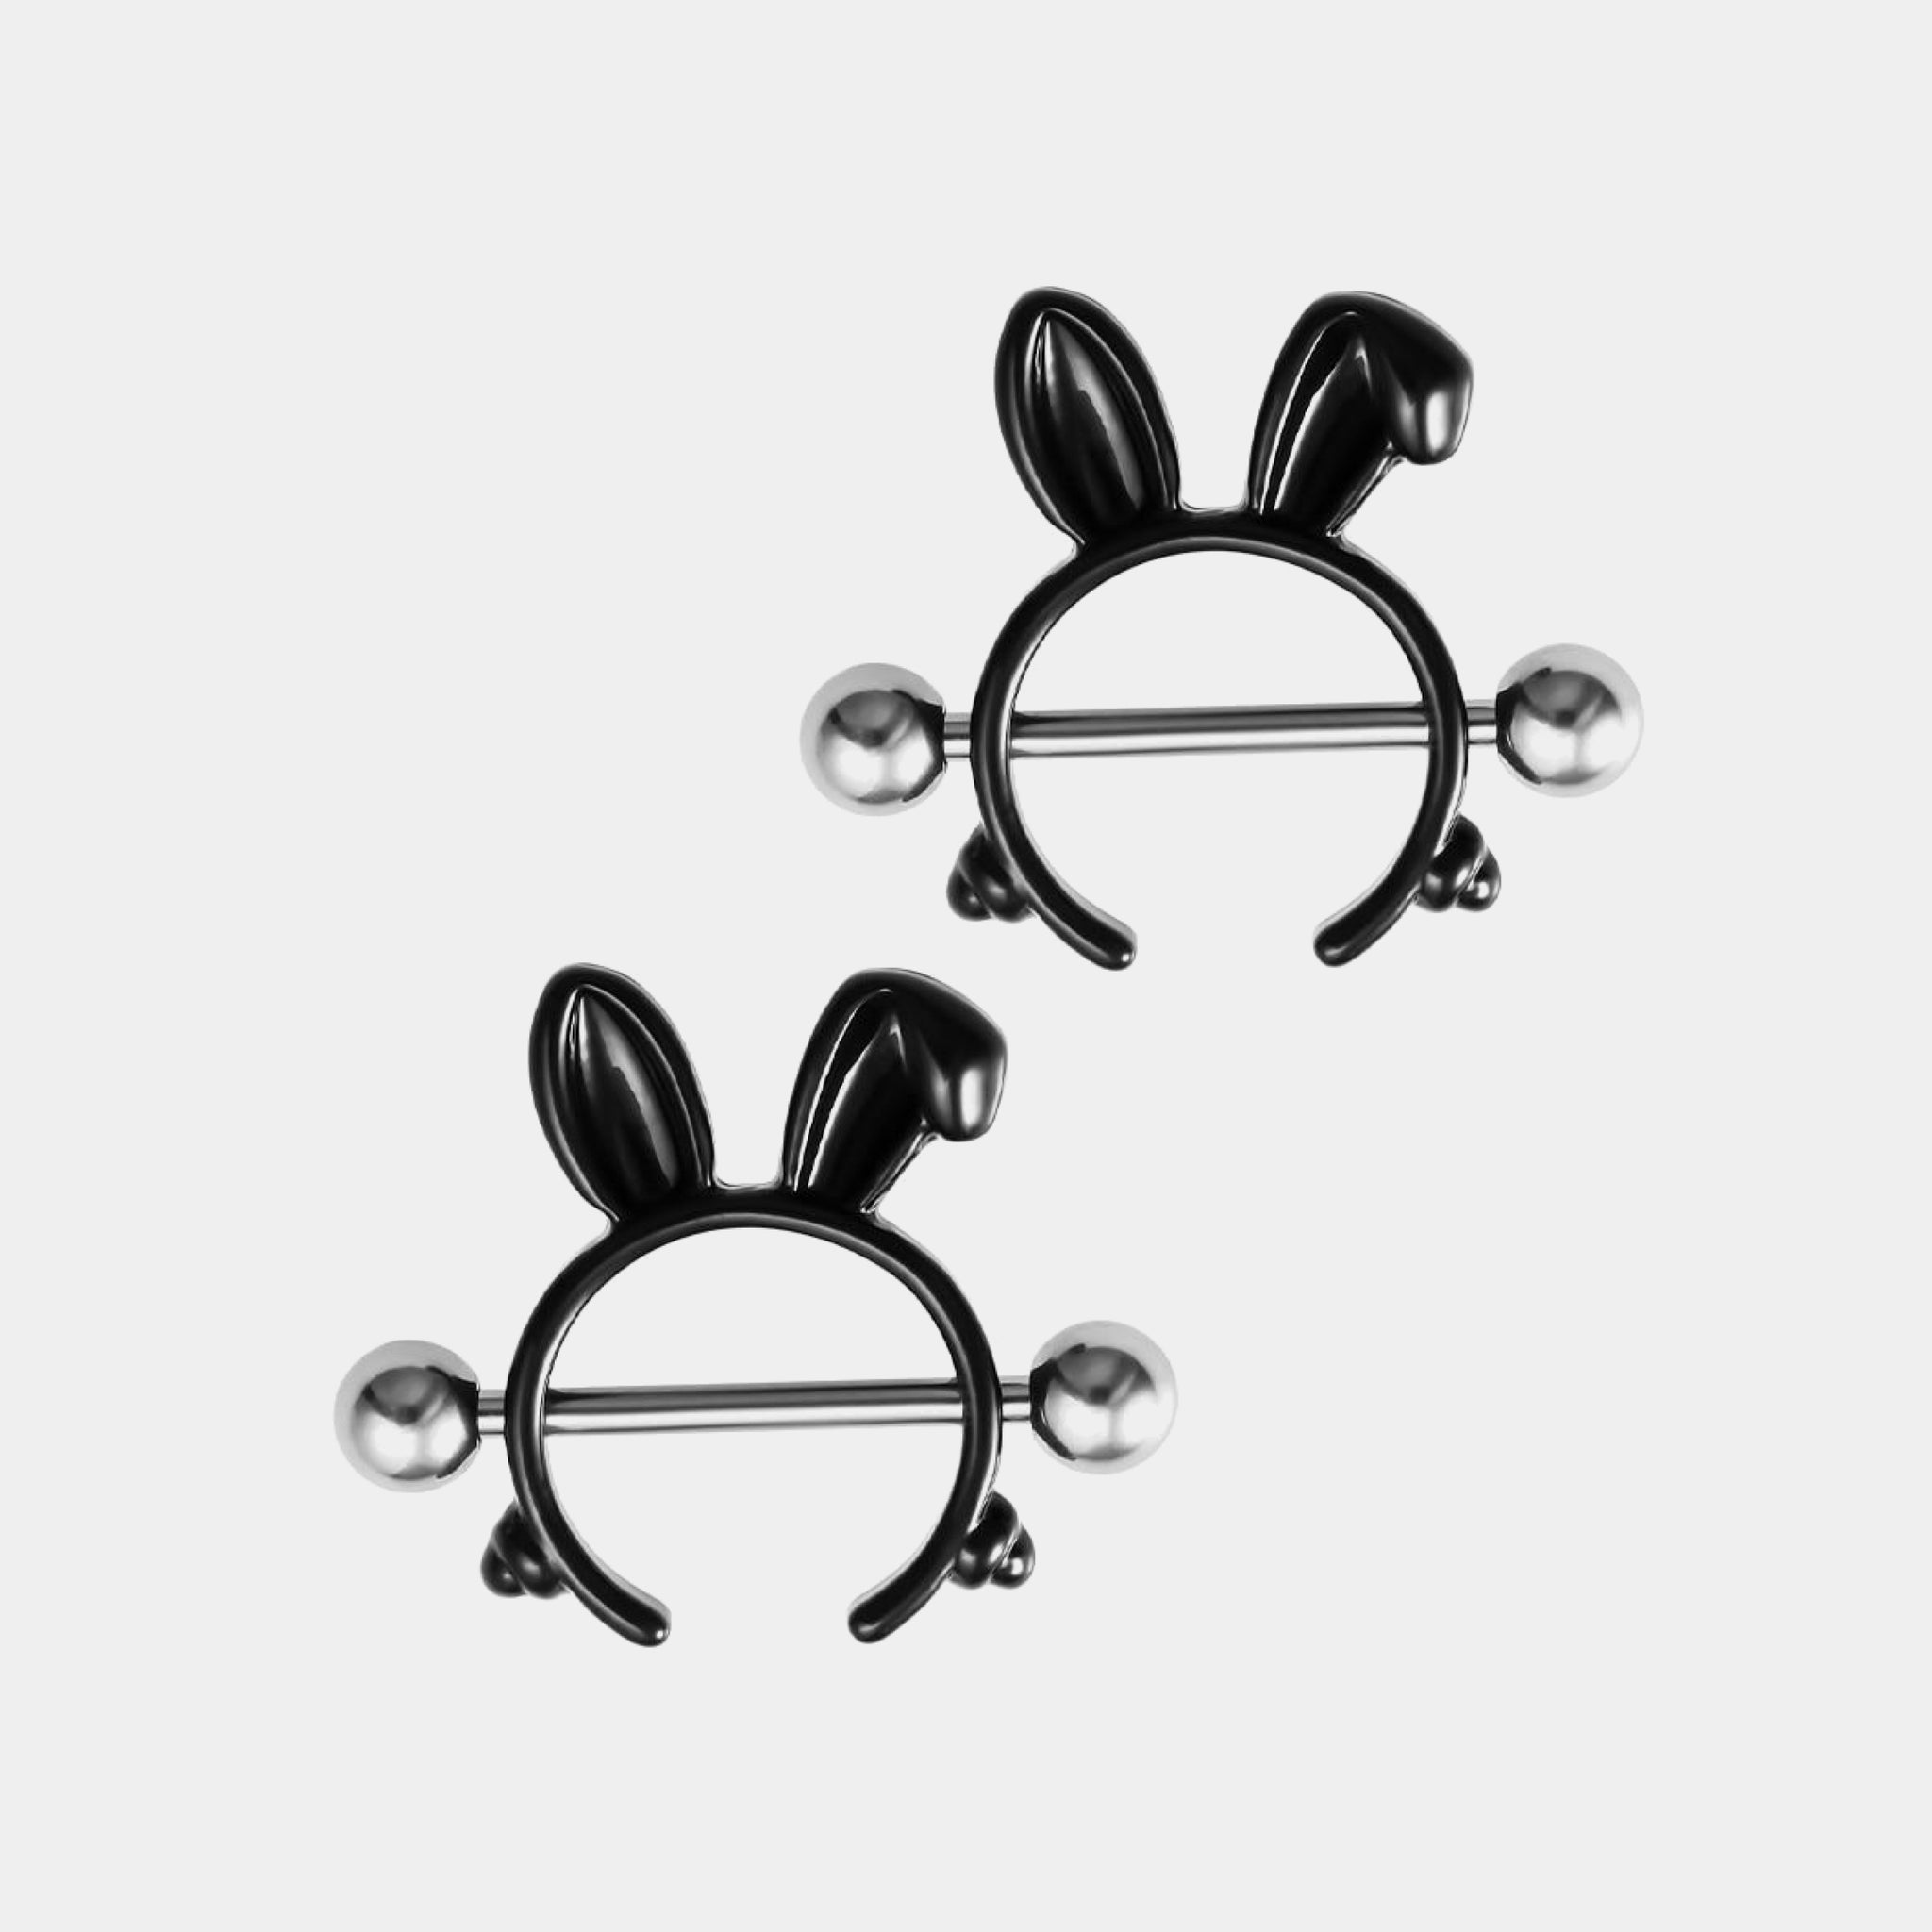 1 Pair Rabbit Nipple Rings 316L Stainless Steel Nipple Cover Punk Black Color Body Jewelry Gift